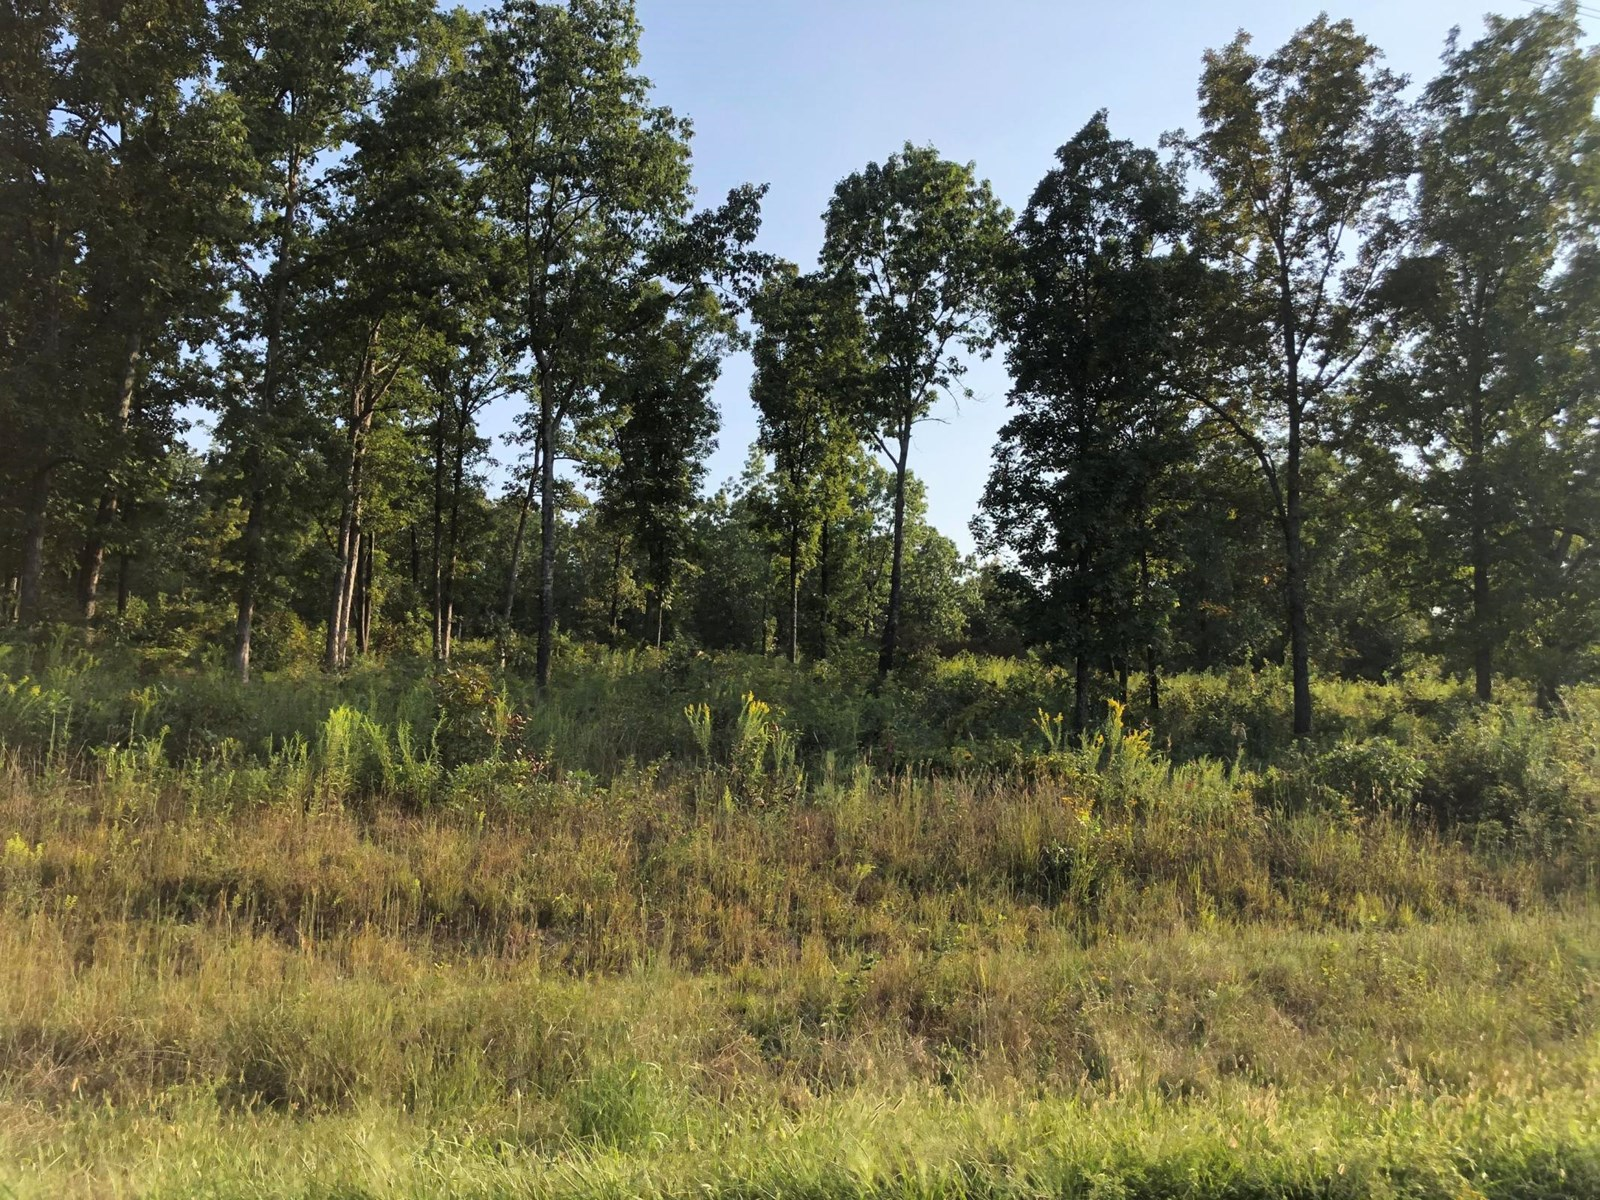 Land for Sale in the Ozarks